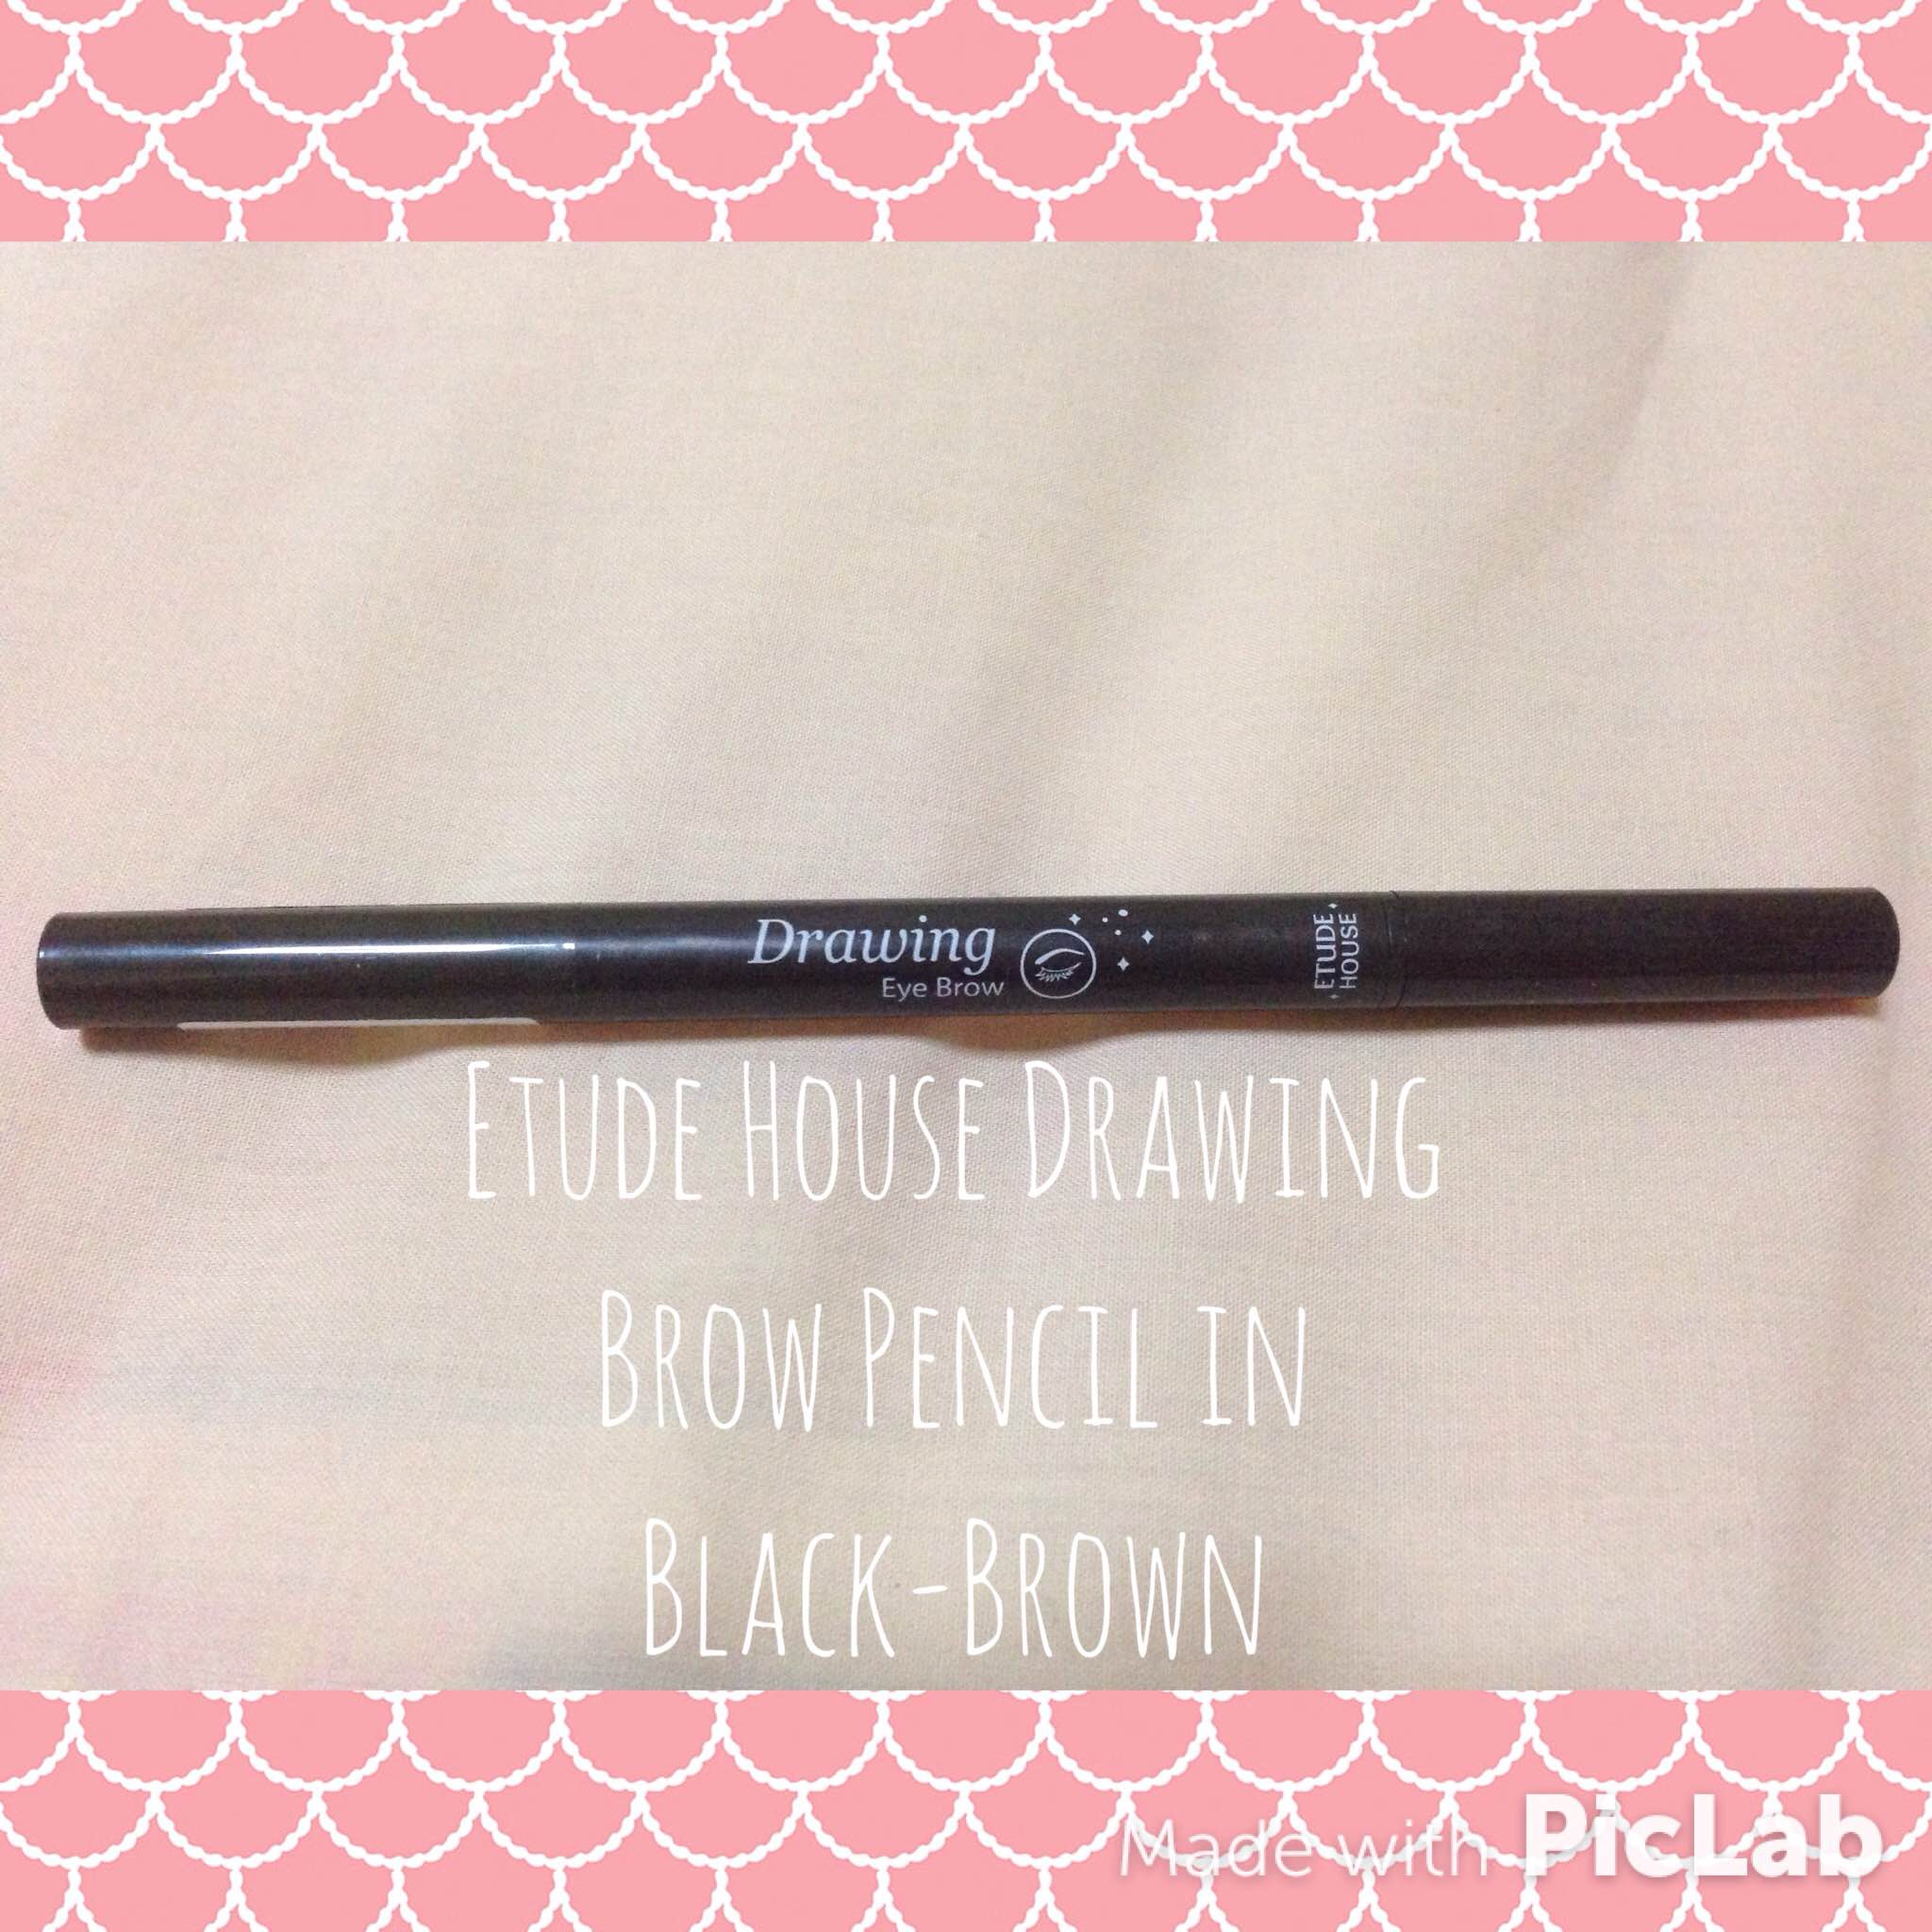 Review Etude House Drawing Brow Pencil In Black Brown Sydsunshine